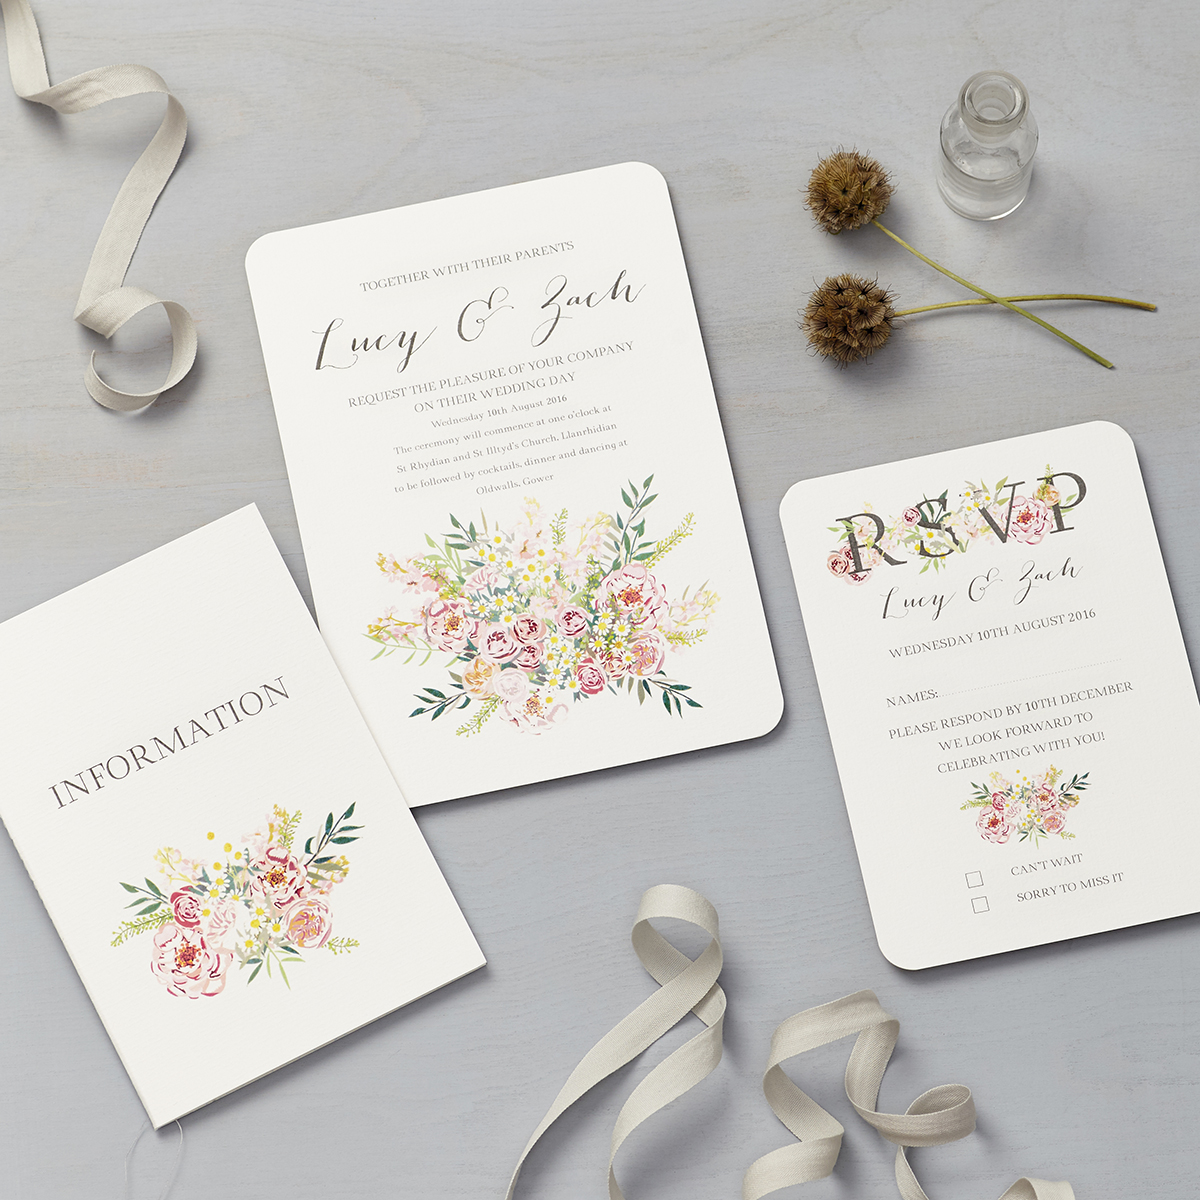 Lucy and Zach\'s Welsh wedding | Lucy Says I Do